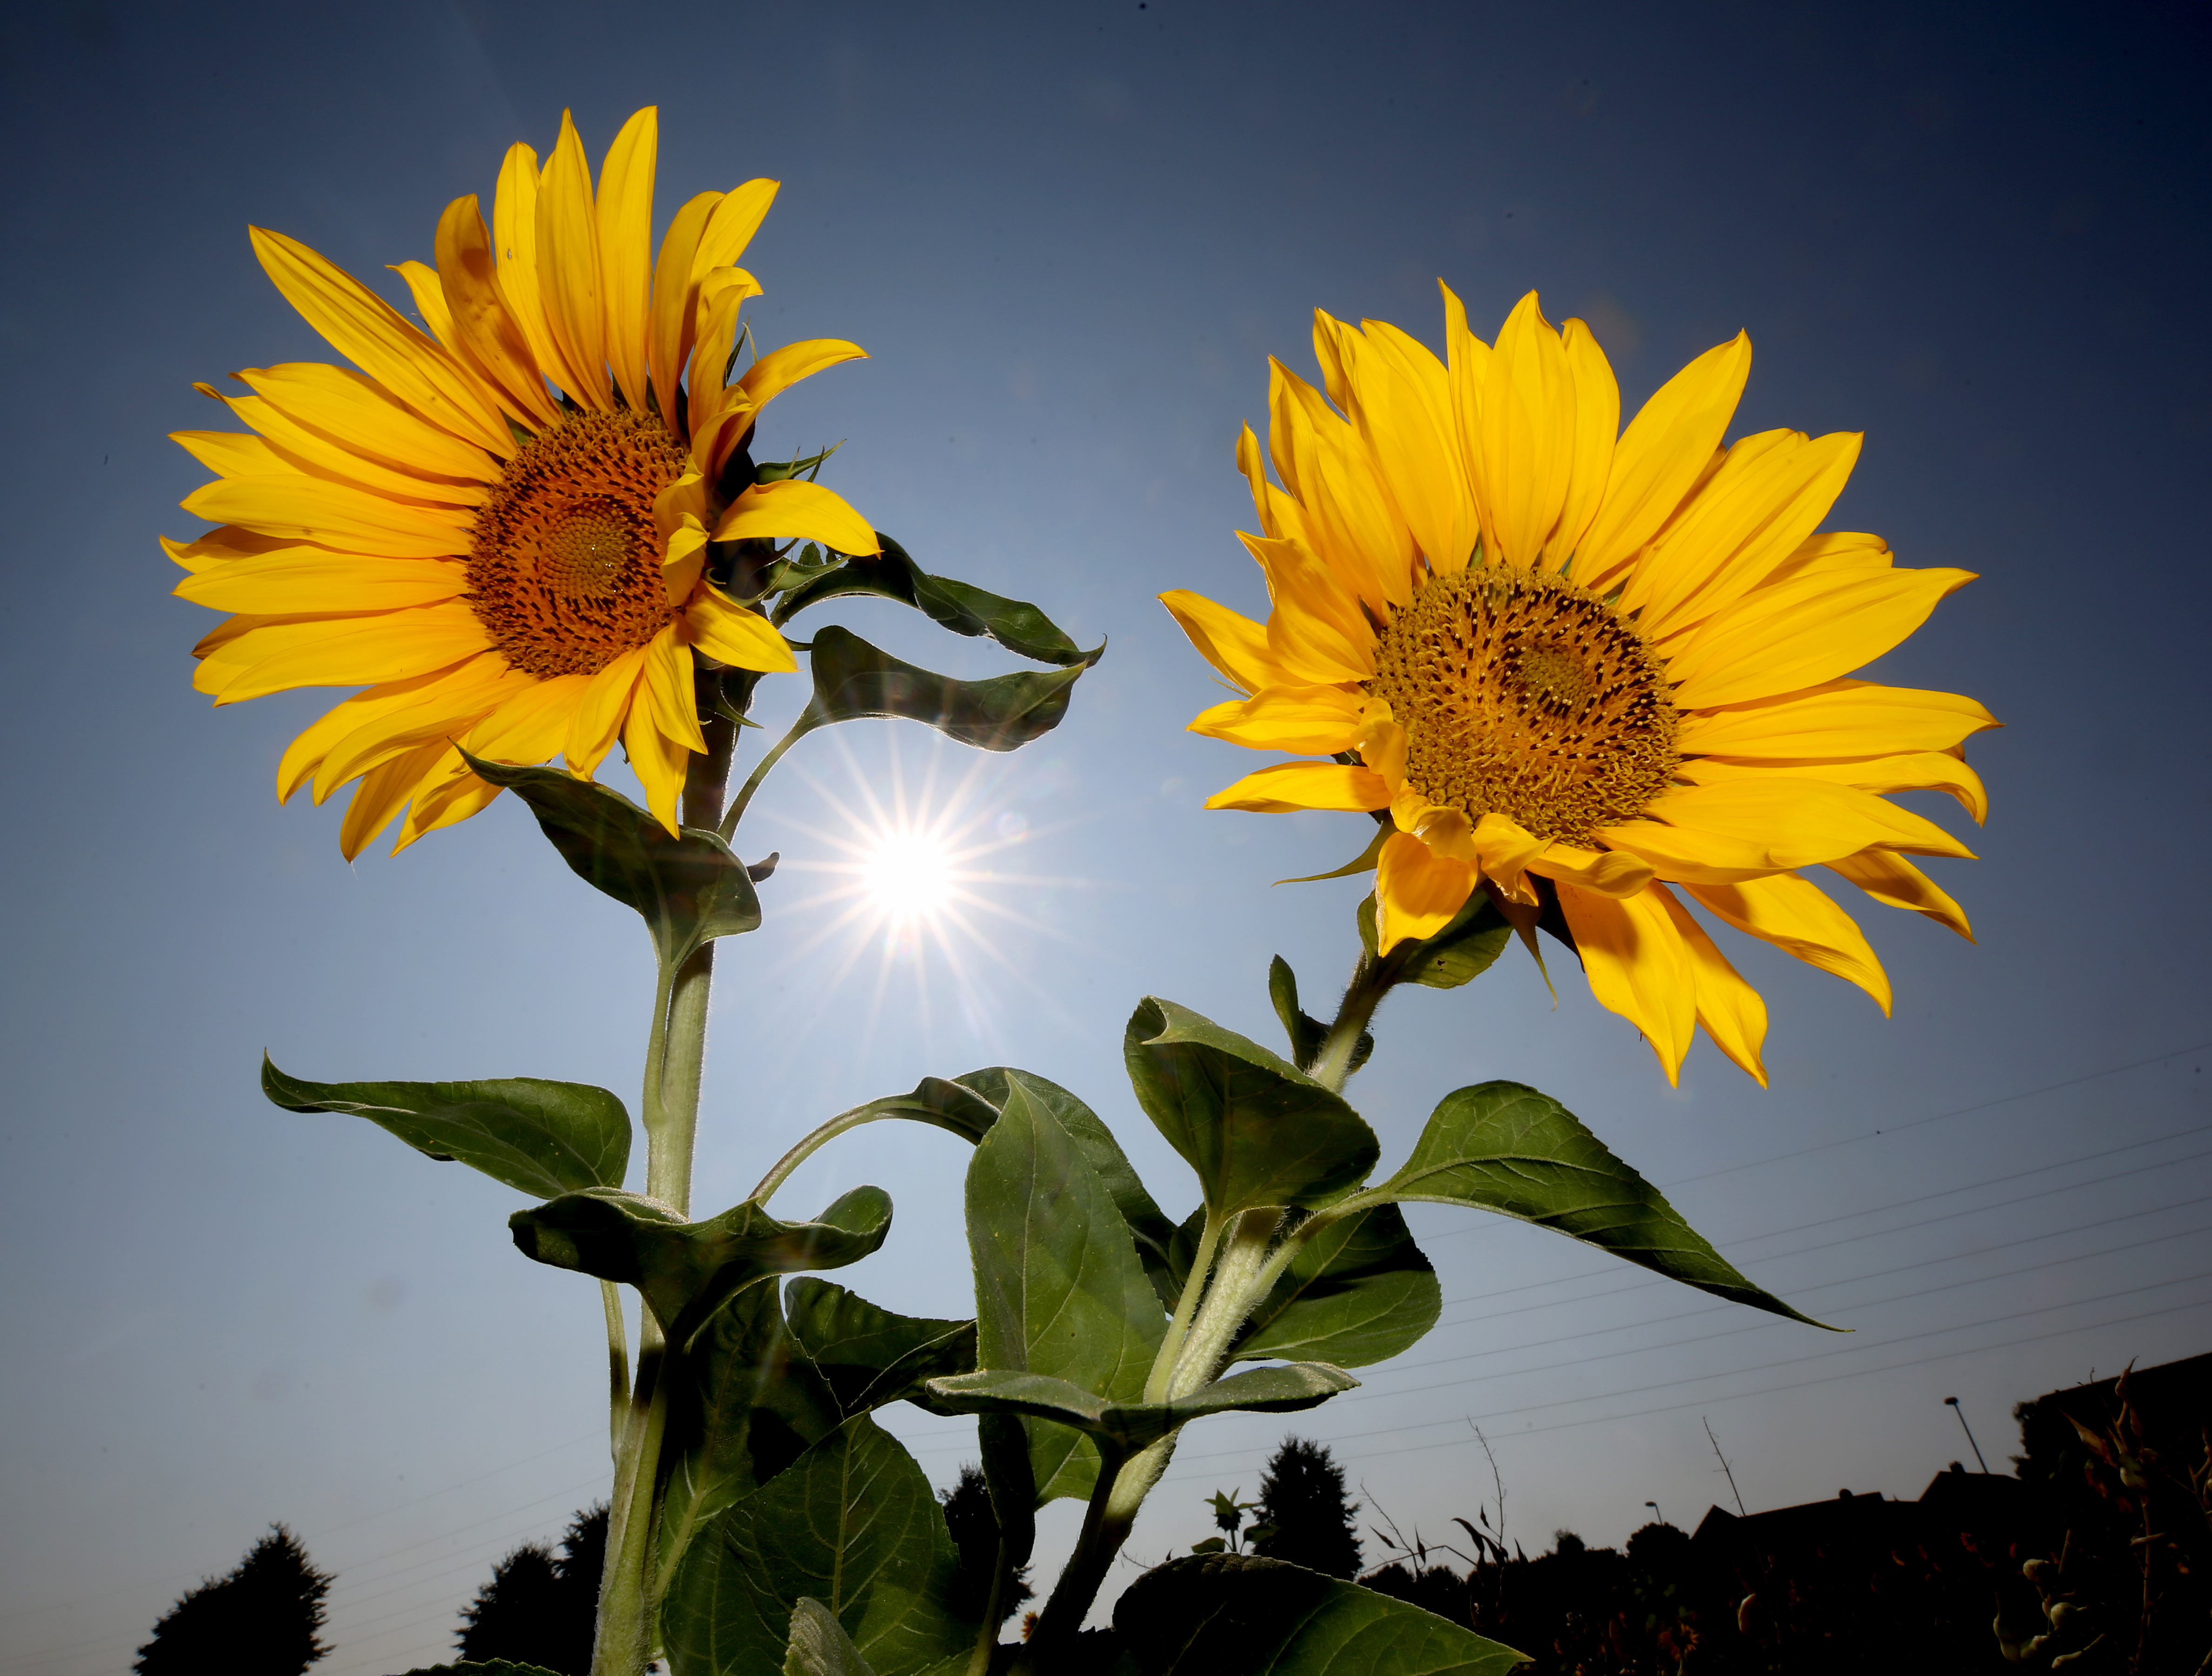 Sunflowers stand in the sun